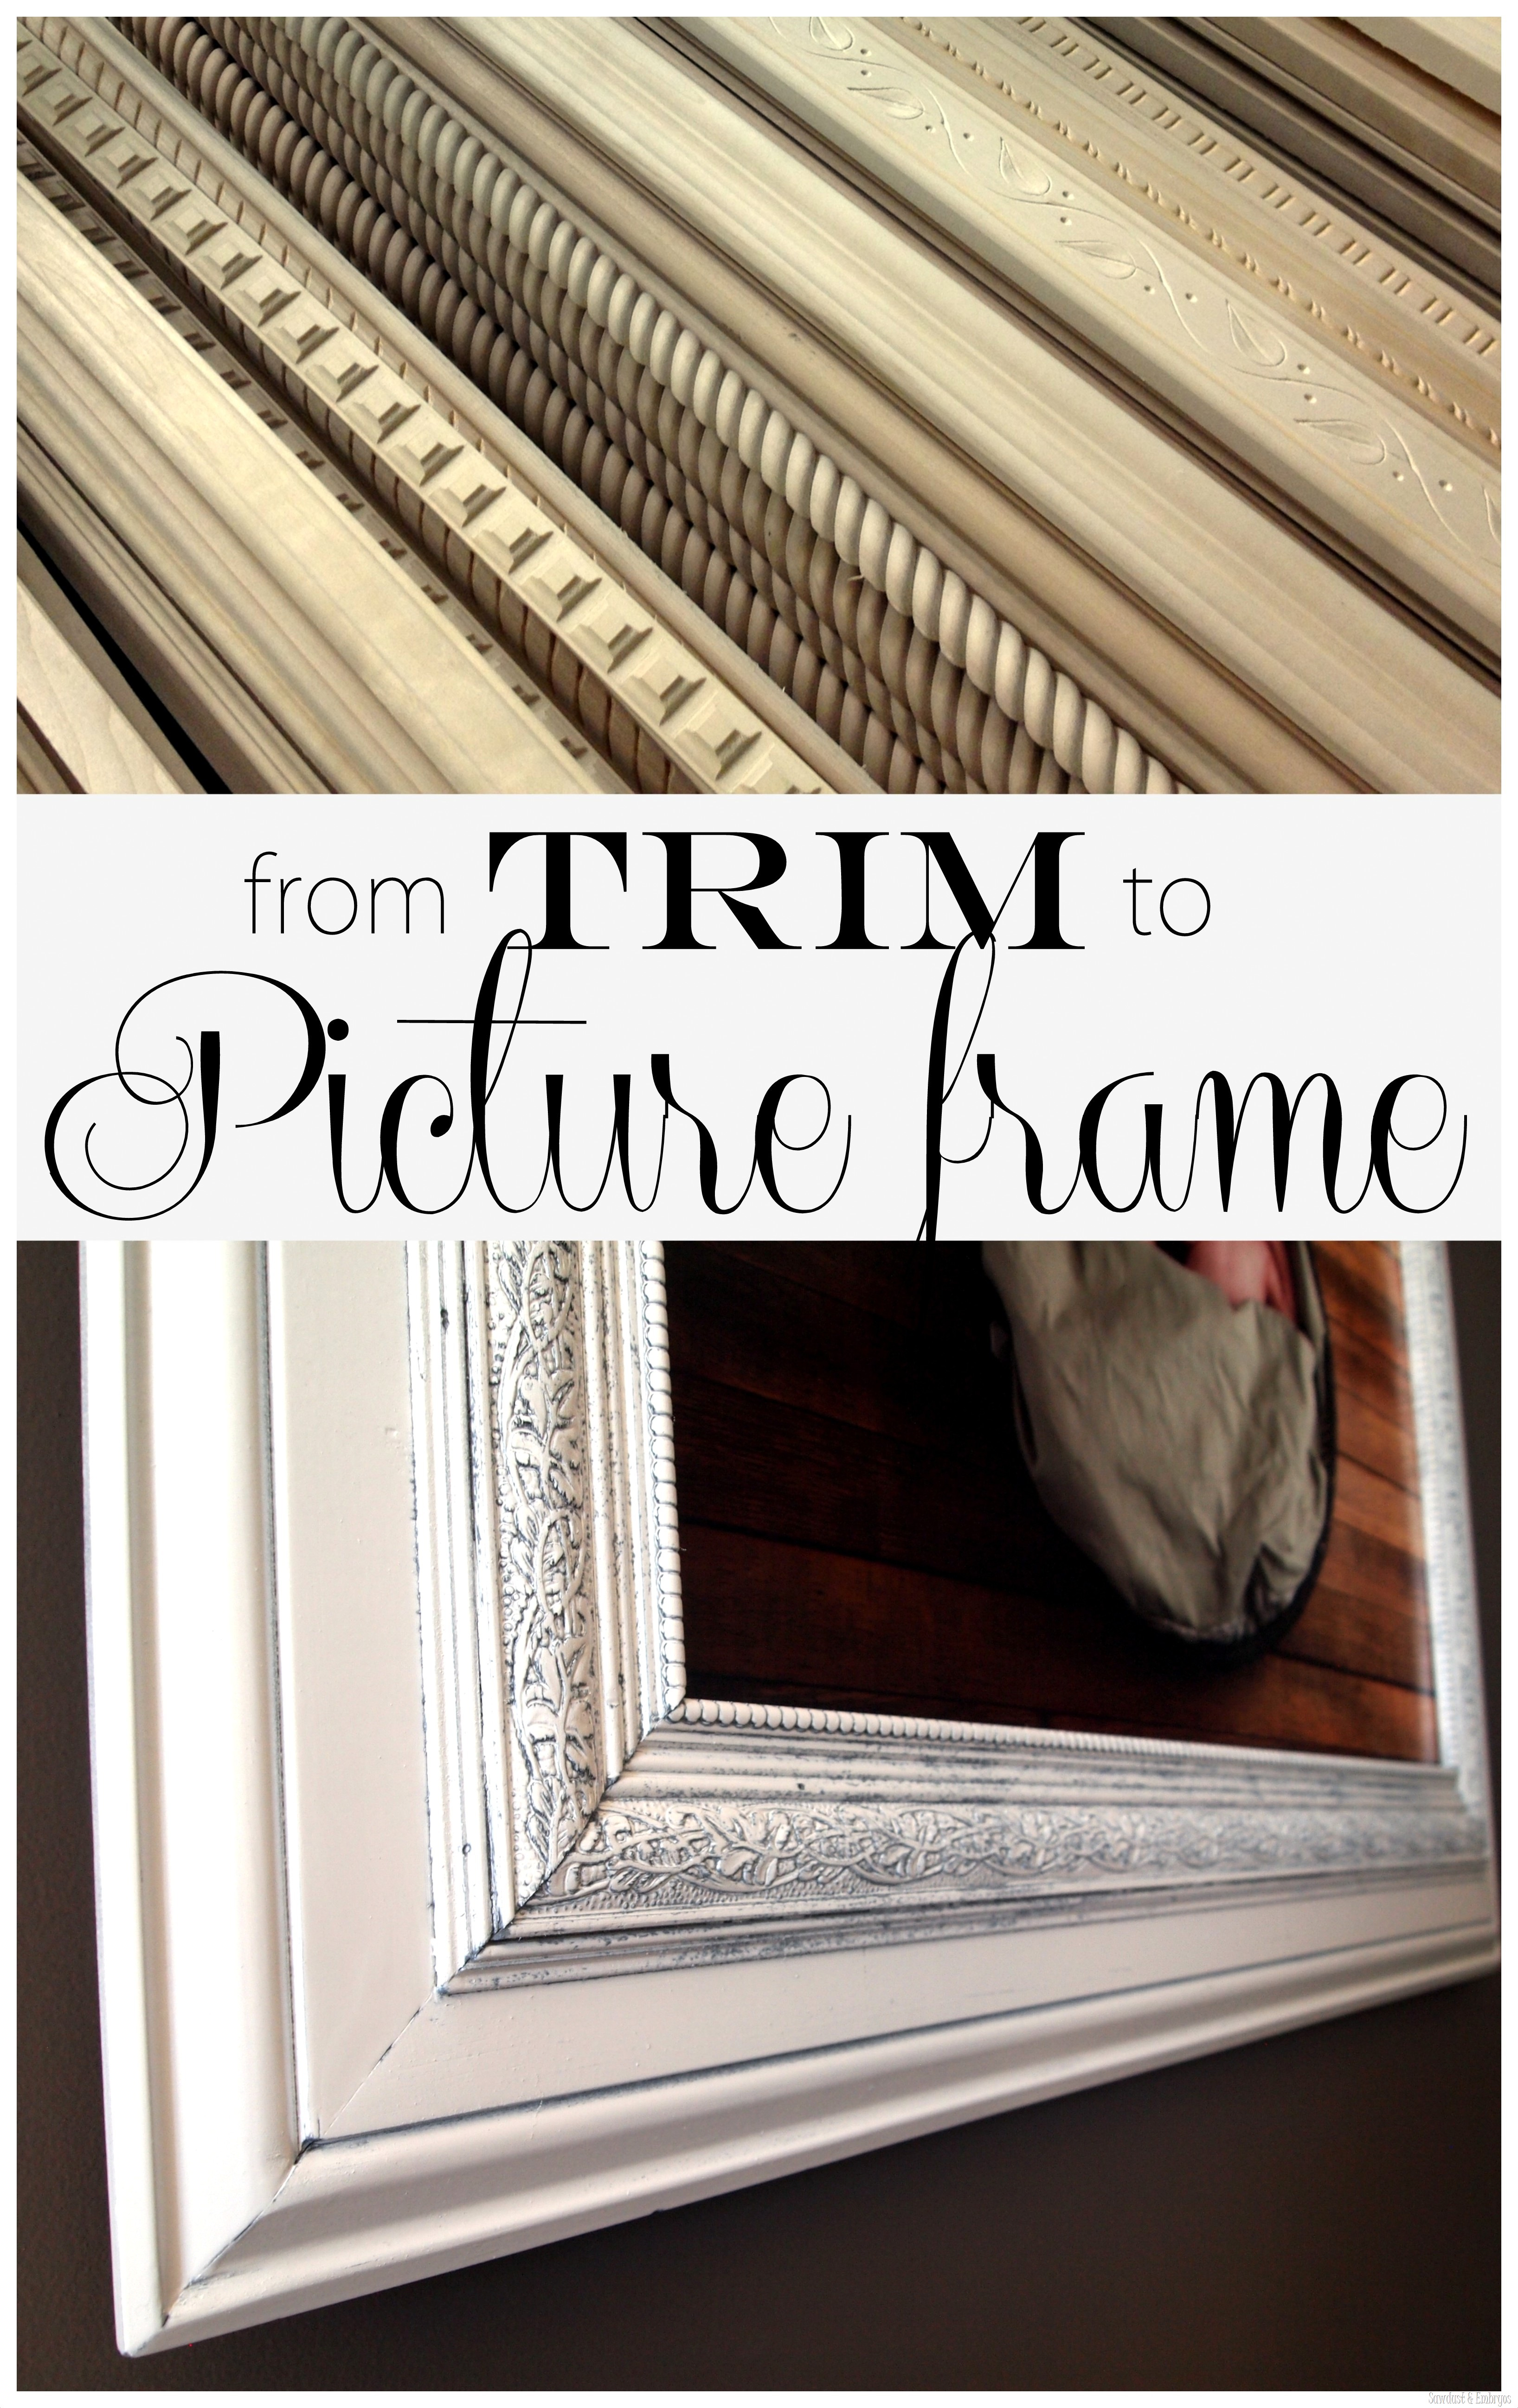 Build a custom frame out of trim pieces reality daydream build your own custom giant picture frame using layered trim pieces sawdust embryos jeuxipadfo Images